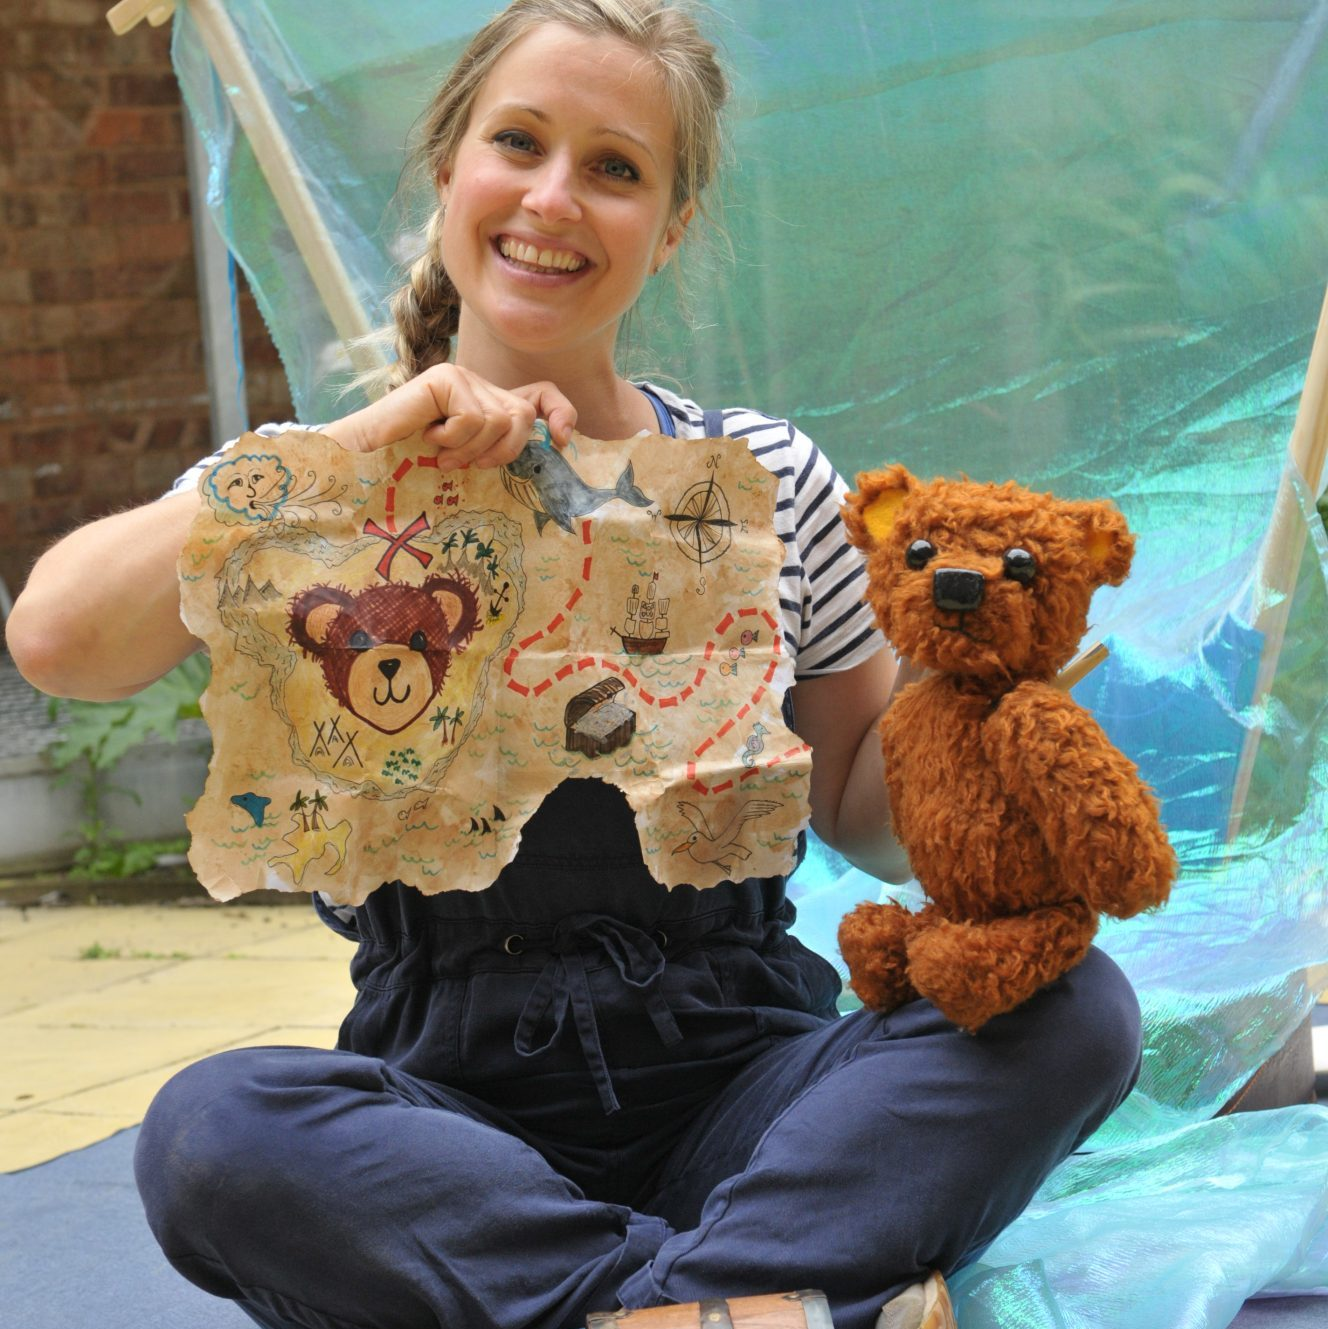 Performer holding Teddy Bear Puppet and Treasure Map